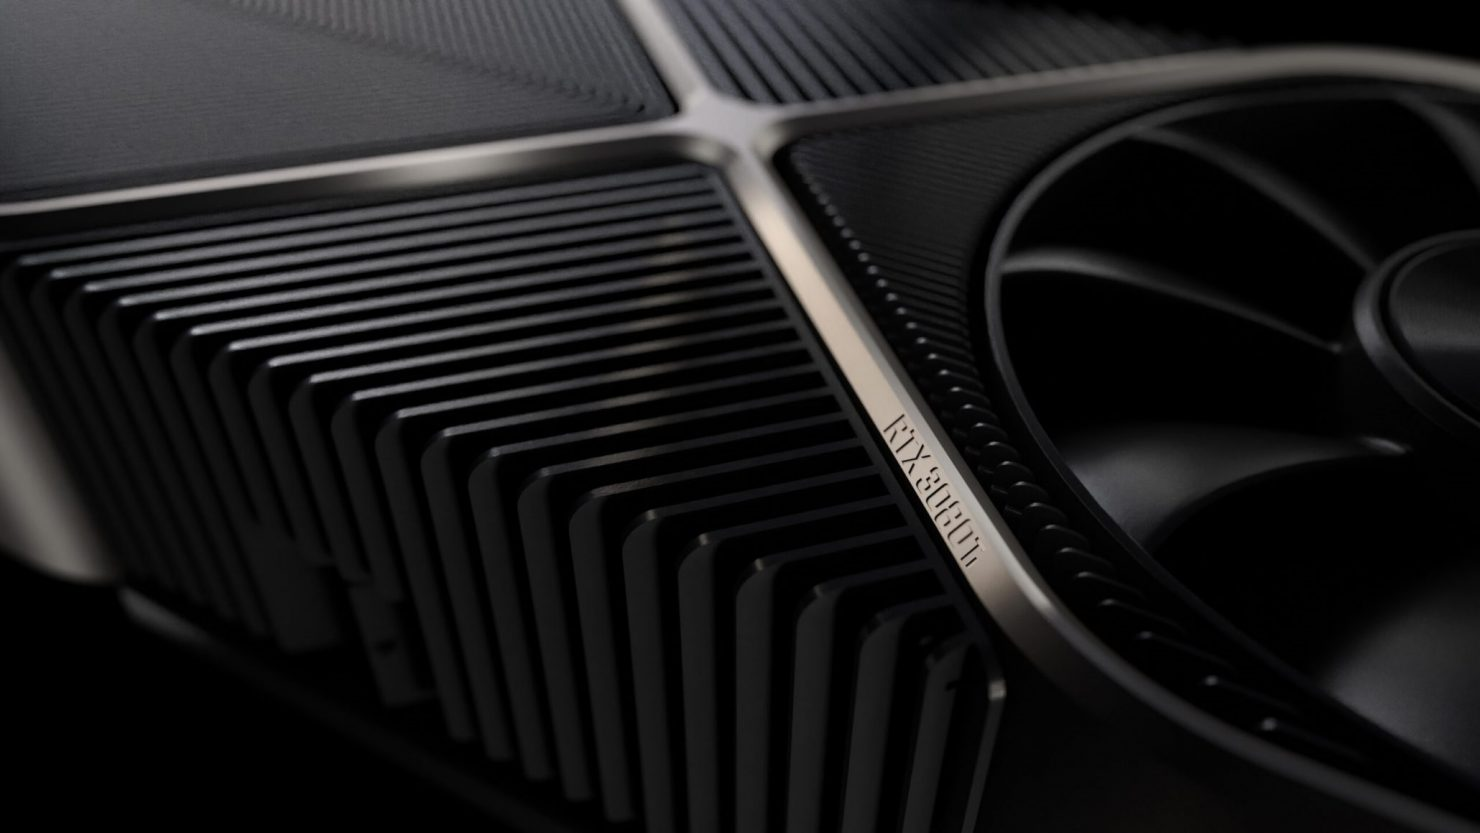 watch-the-nvidia-computex-2021-keynote-live-here-–-geforce-rtx-3080-ti,-rtx-3070-ti-&-tons-of-gaming-announcements